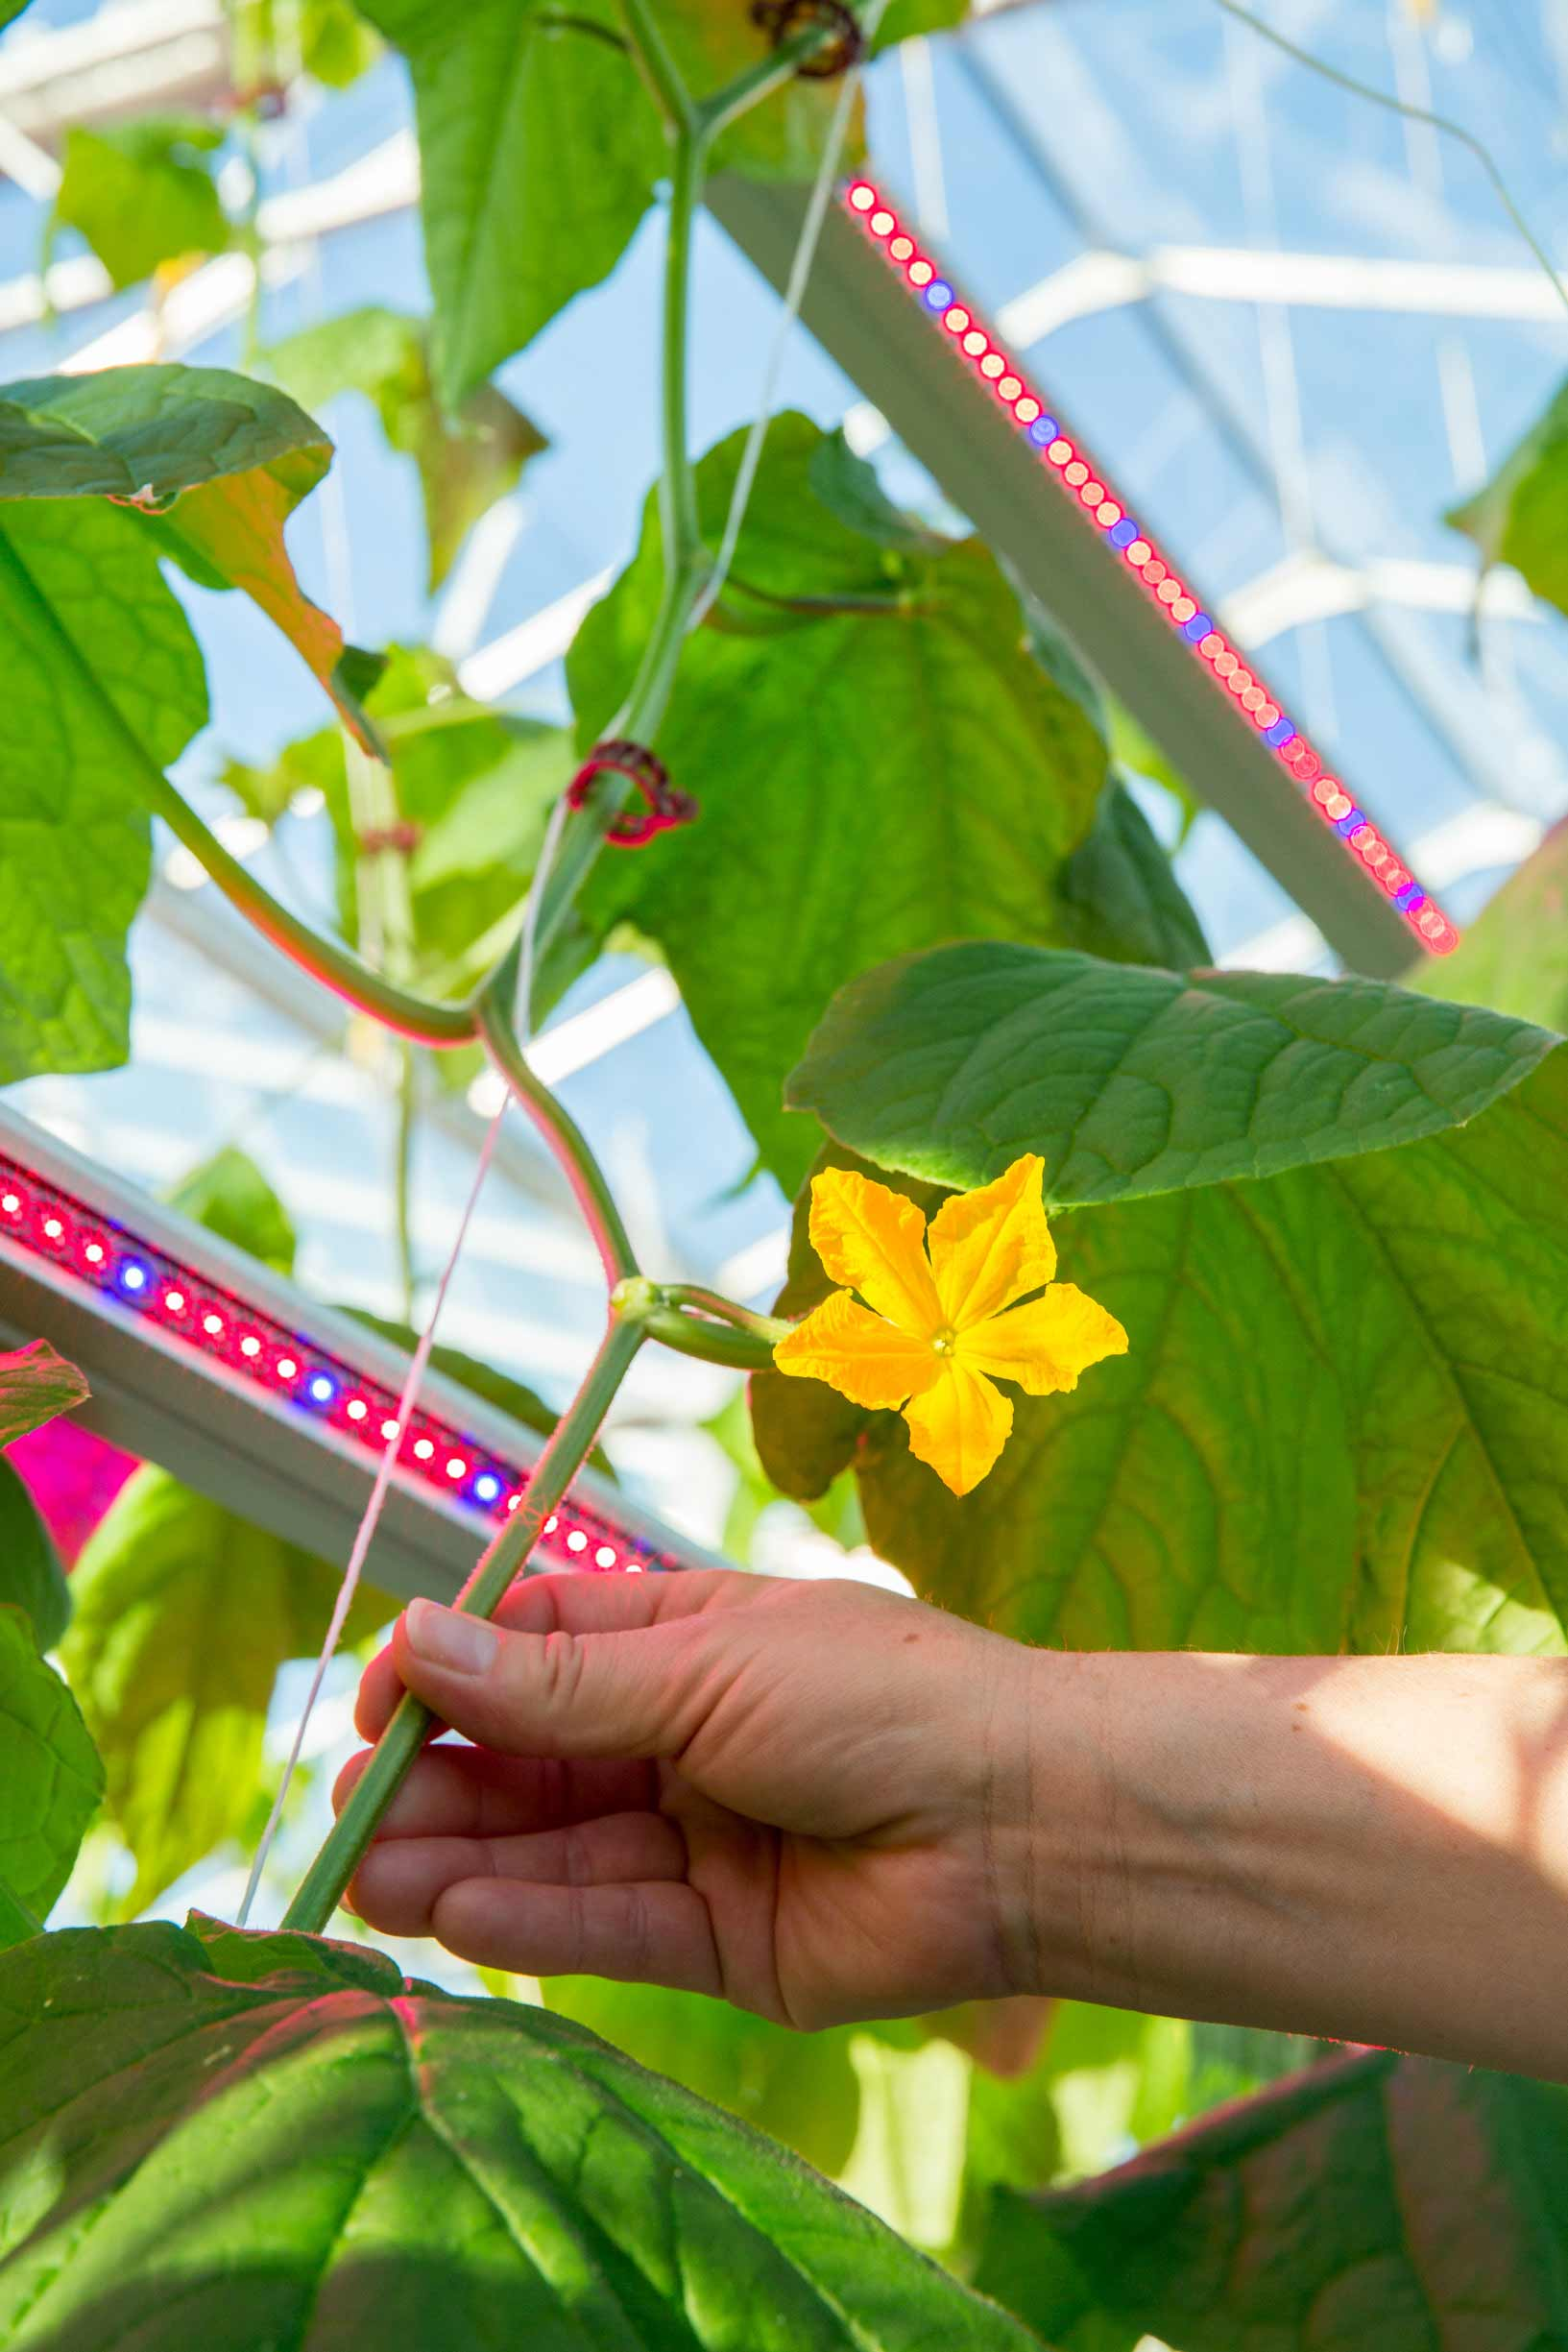 Philips Lighting announces first Russian LED cucumber project with Agrokultura Group and new partner Svetogor